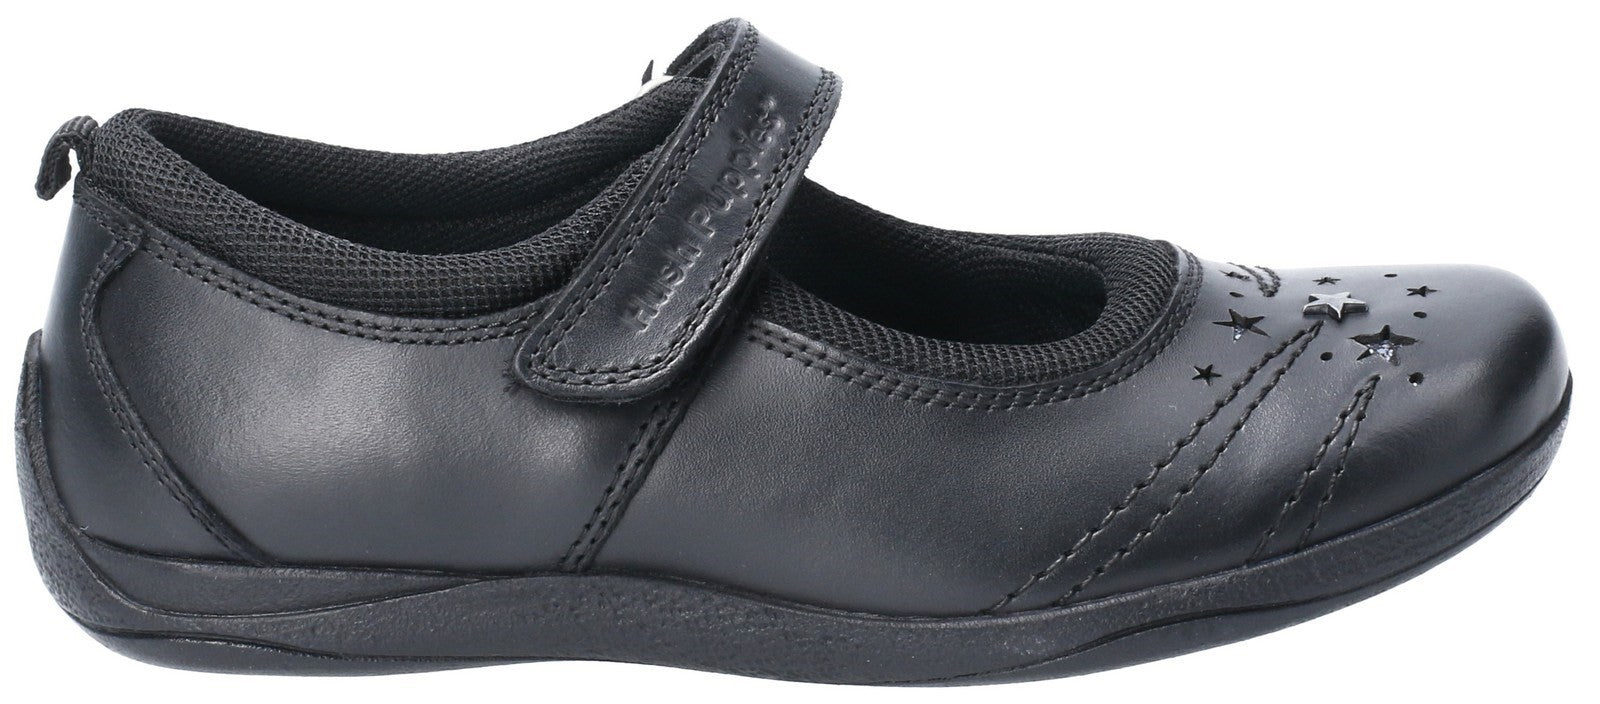 Hush Puppies Men's Amber Jnr Touch Fastening School Shoe Black 28979